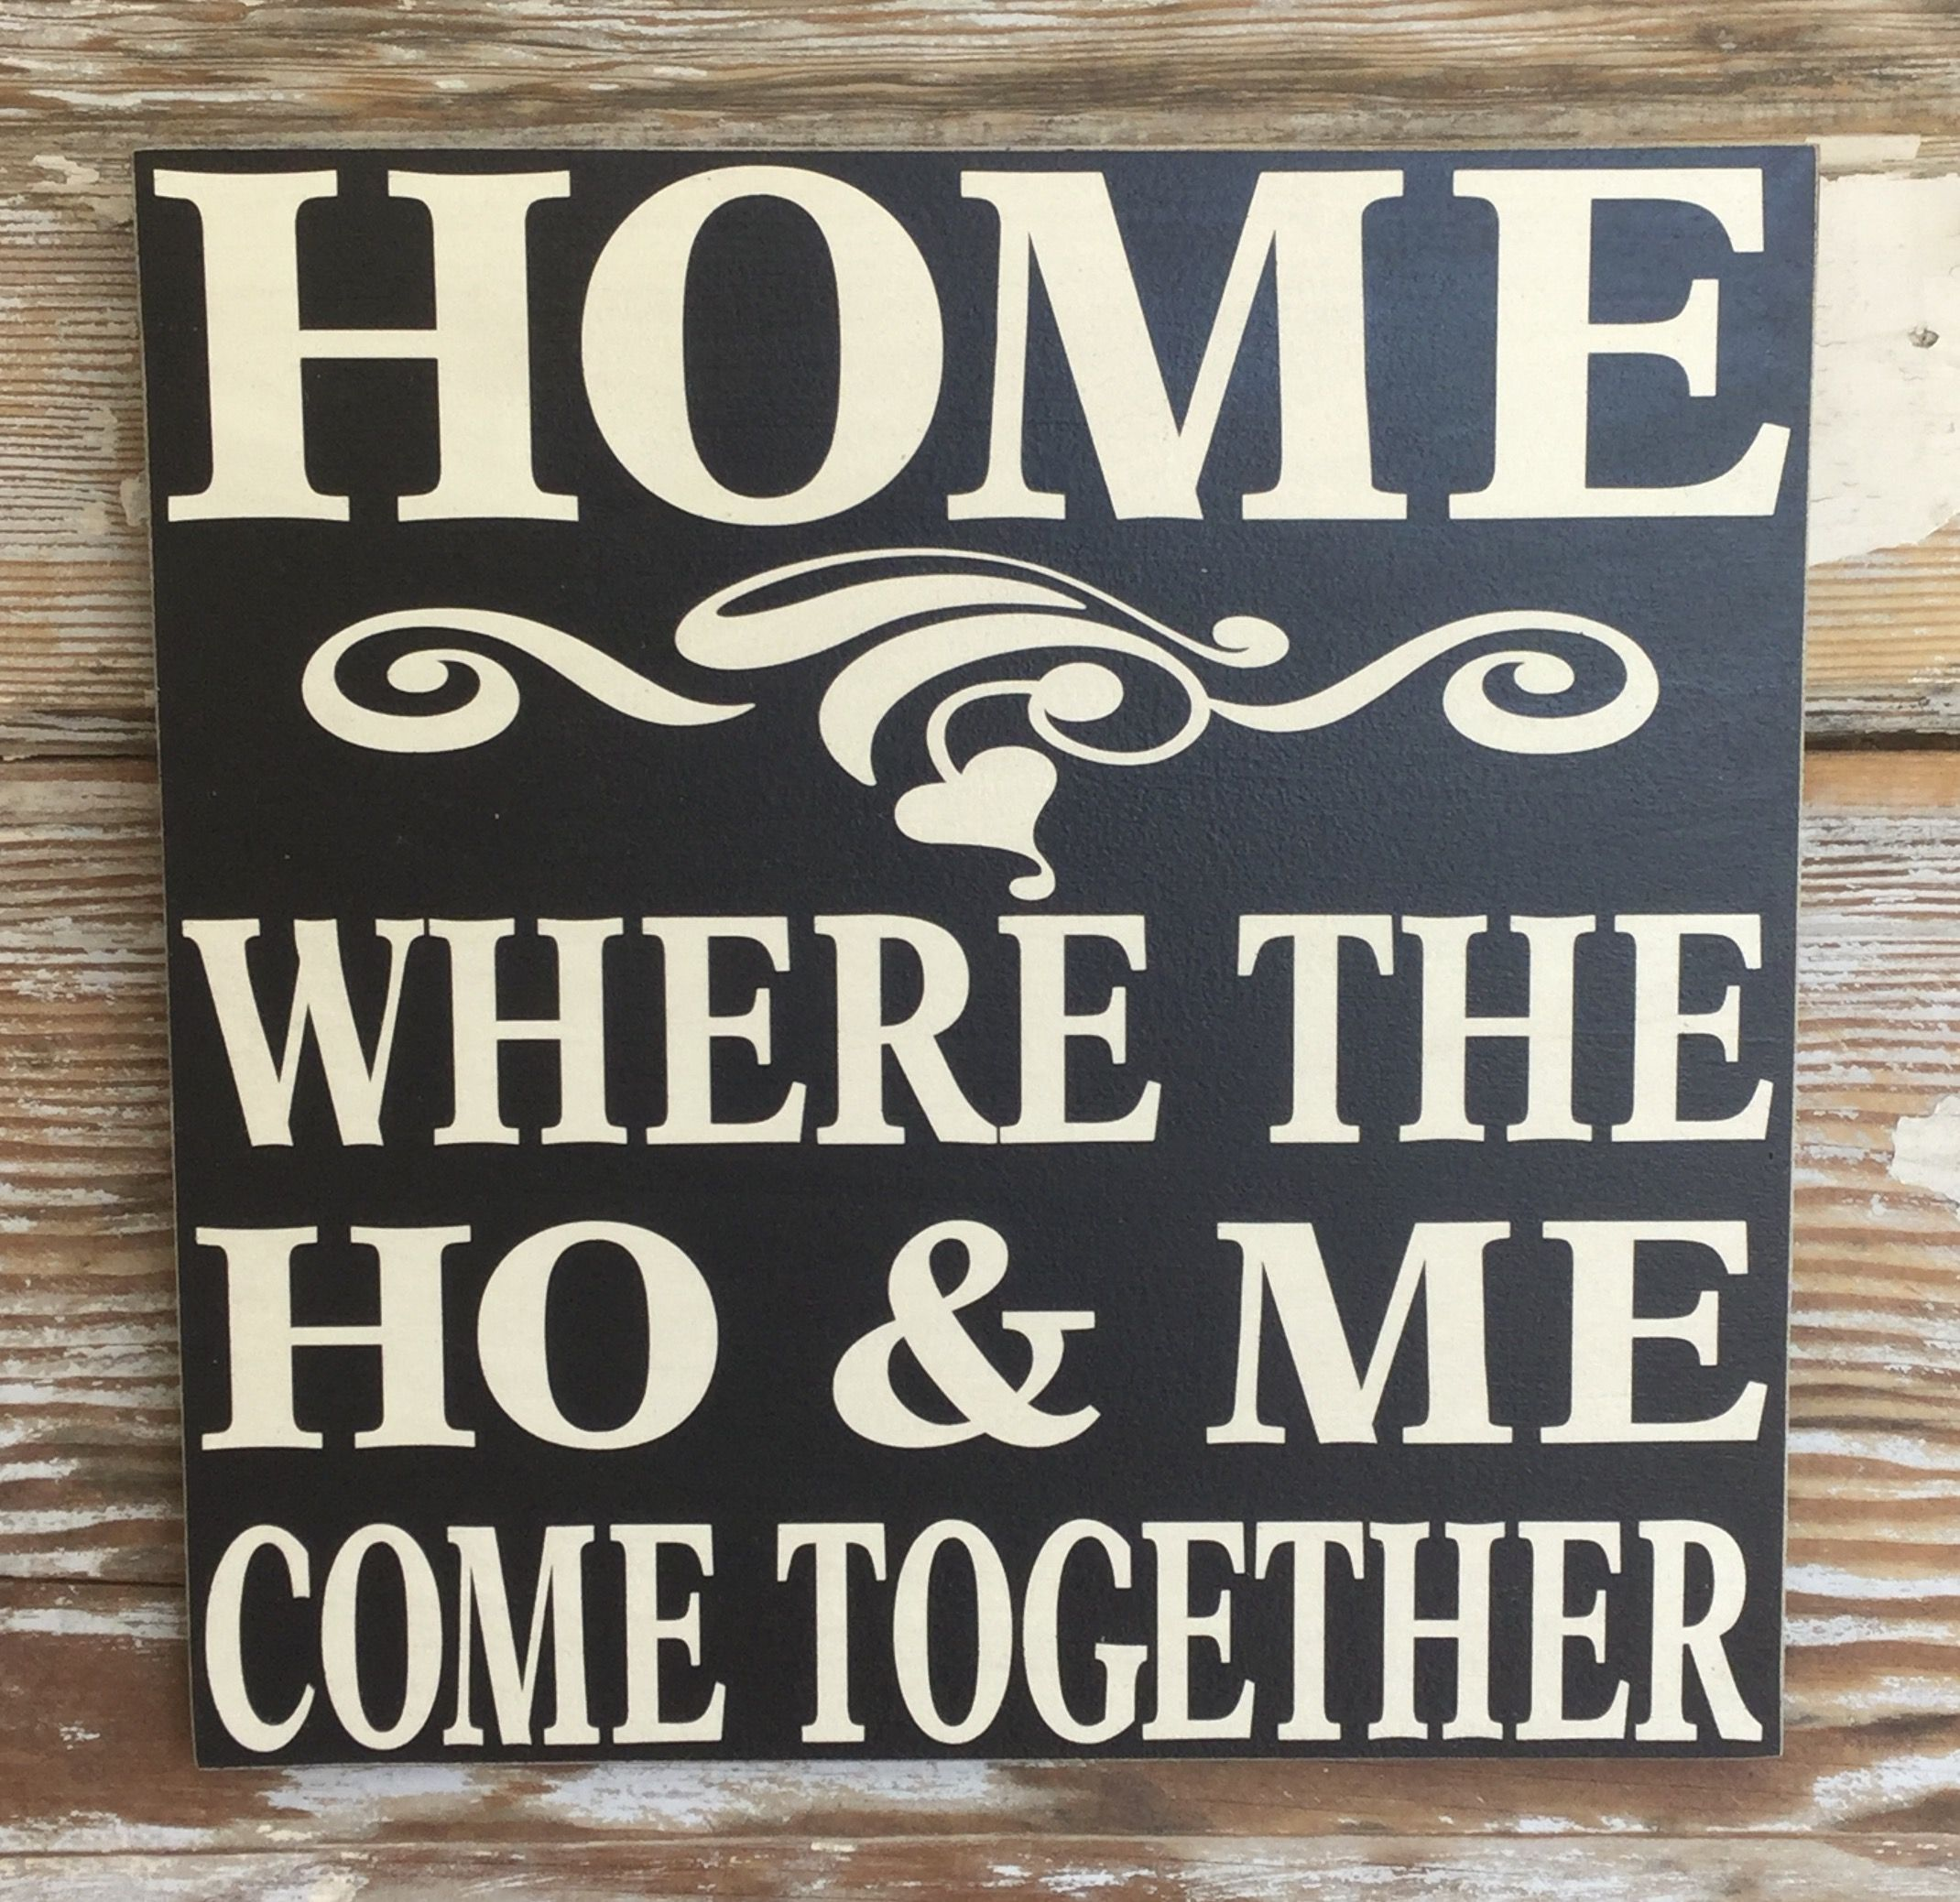 Home Where The Ho Me Come Together Funny Wood Sign Funny Wood Signs Funny Signs Funny Quotes